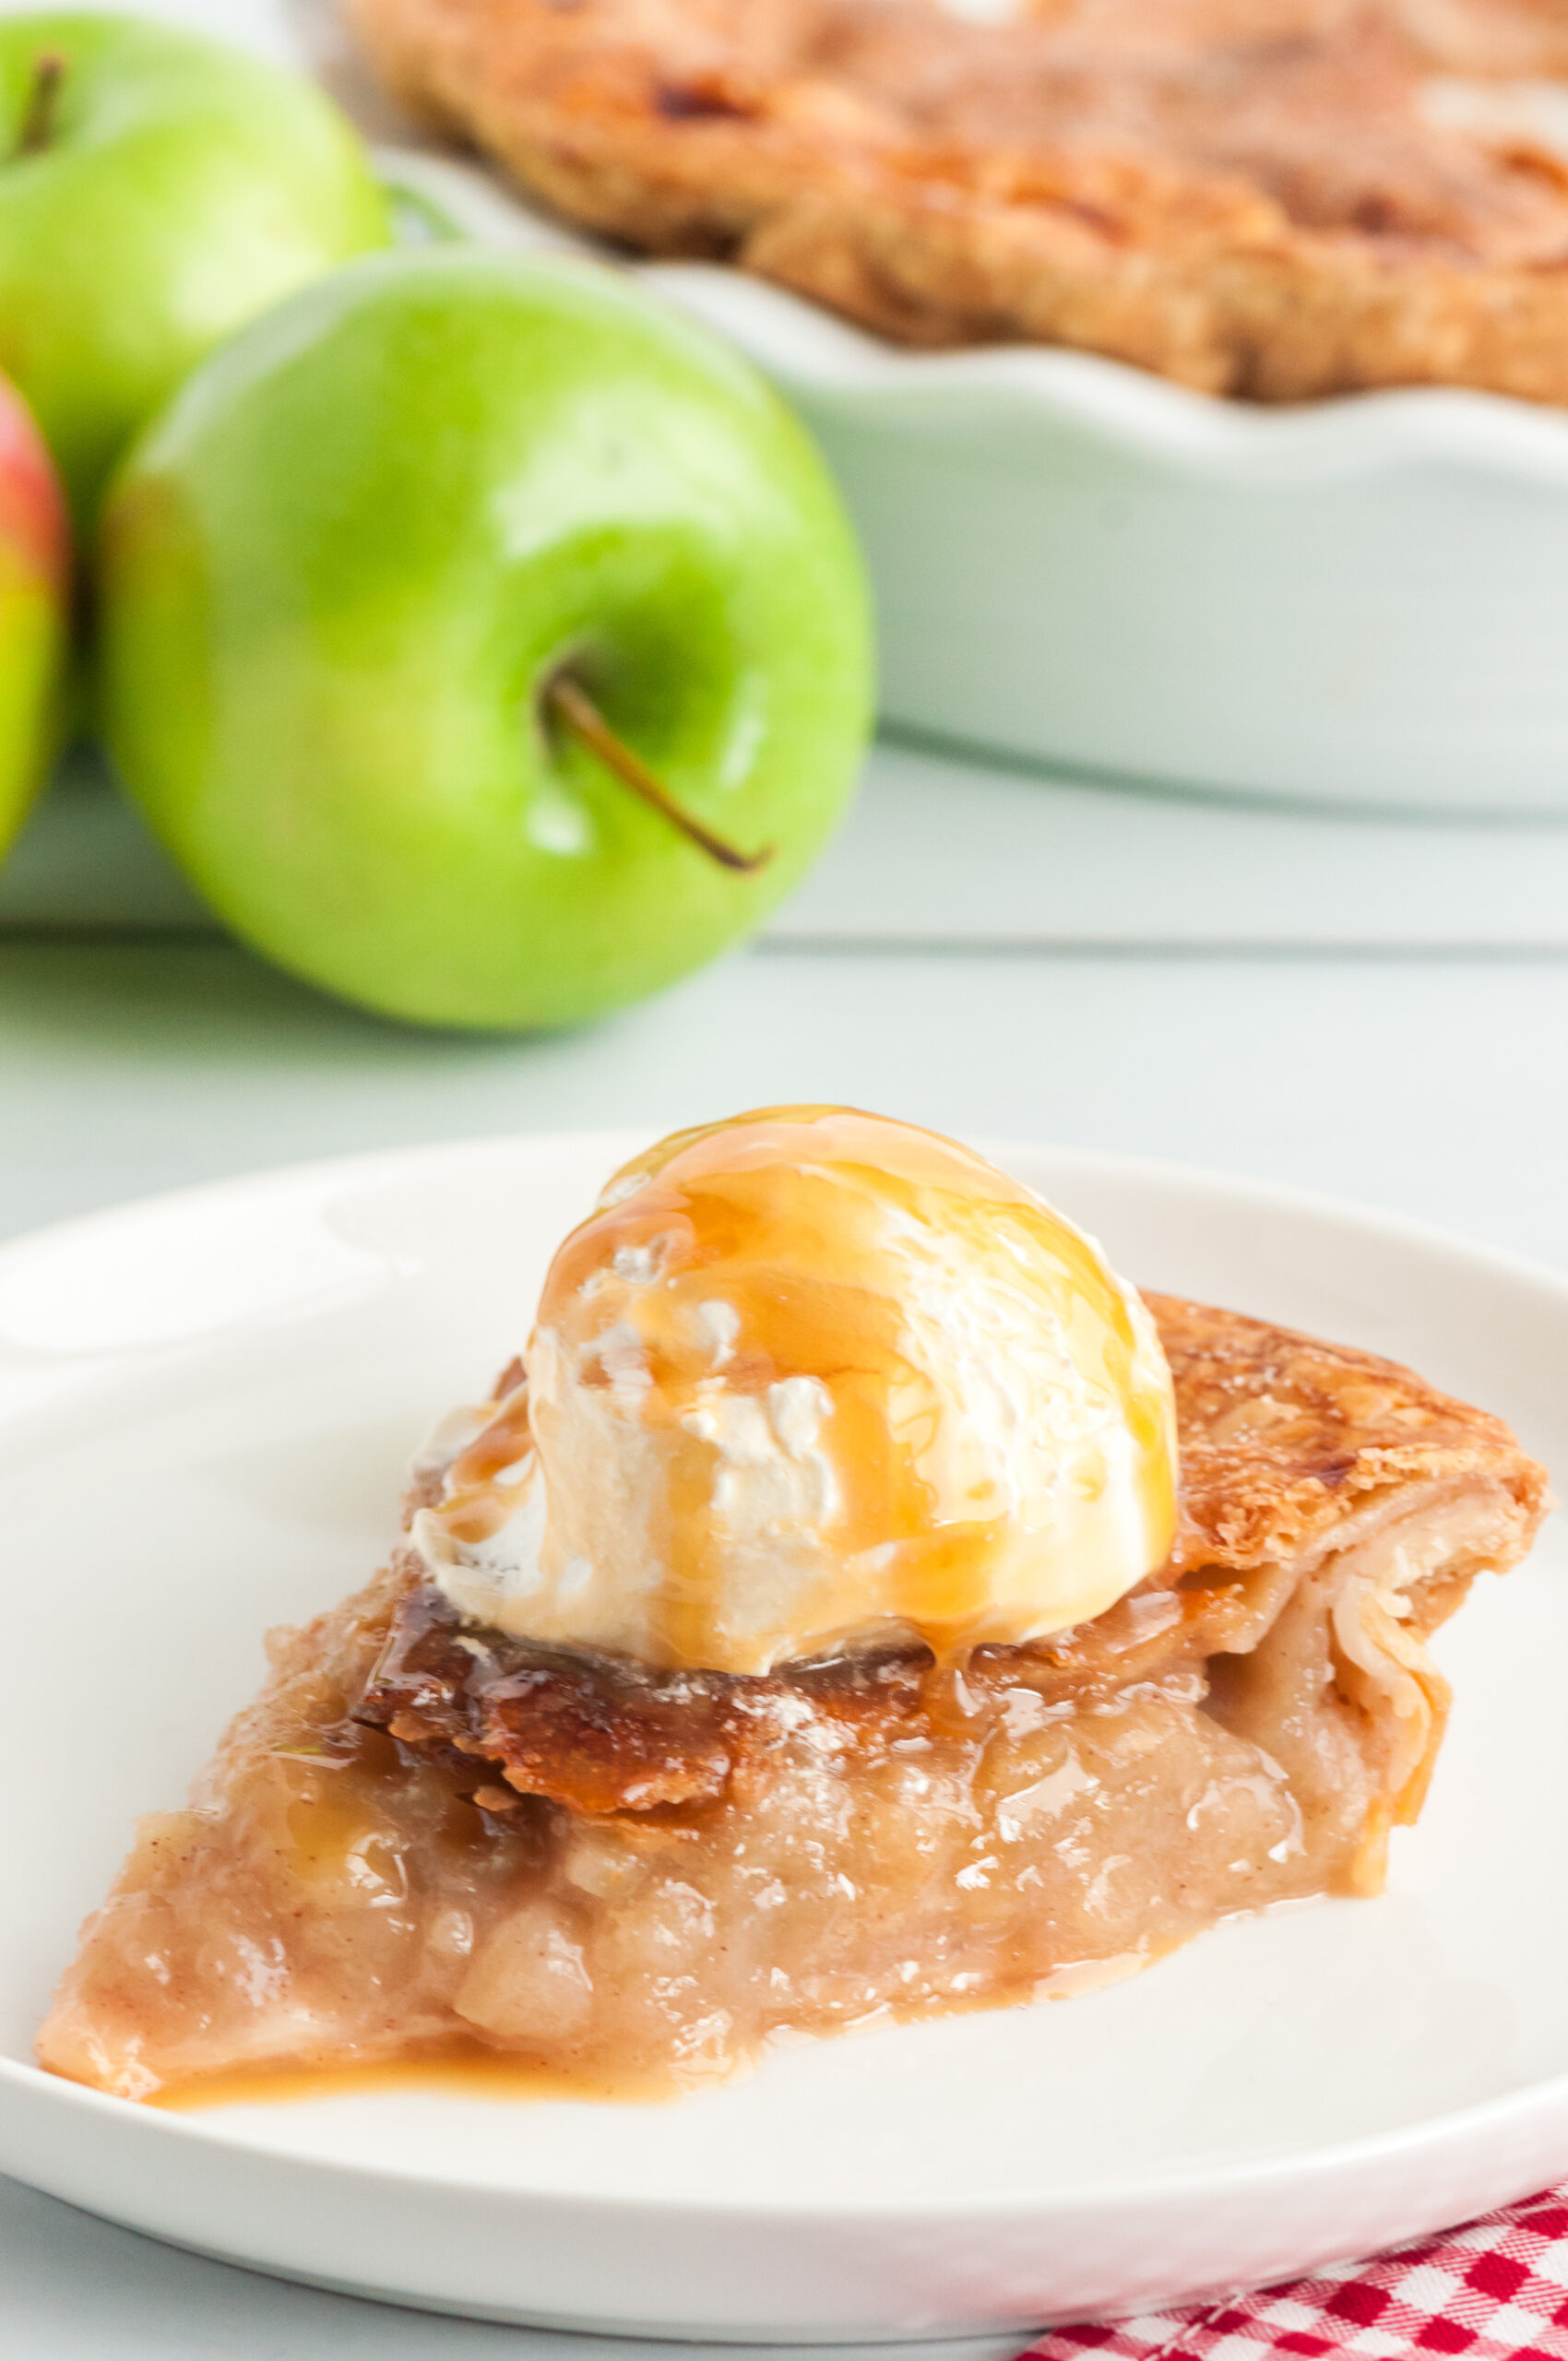 single slice of hot apple pie with ice cream and caramel drizzle on top. fresh apples in background.